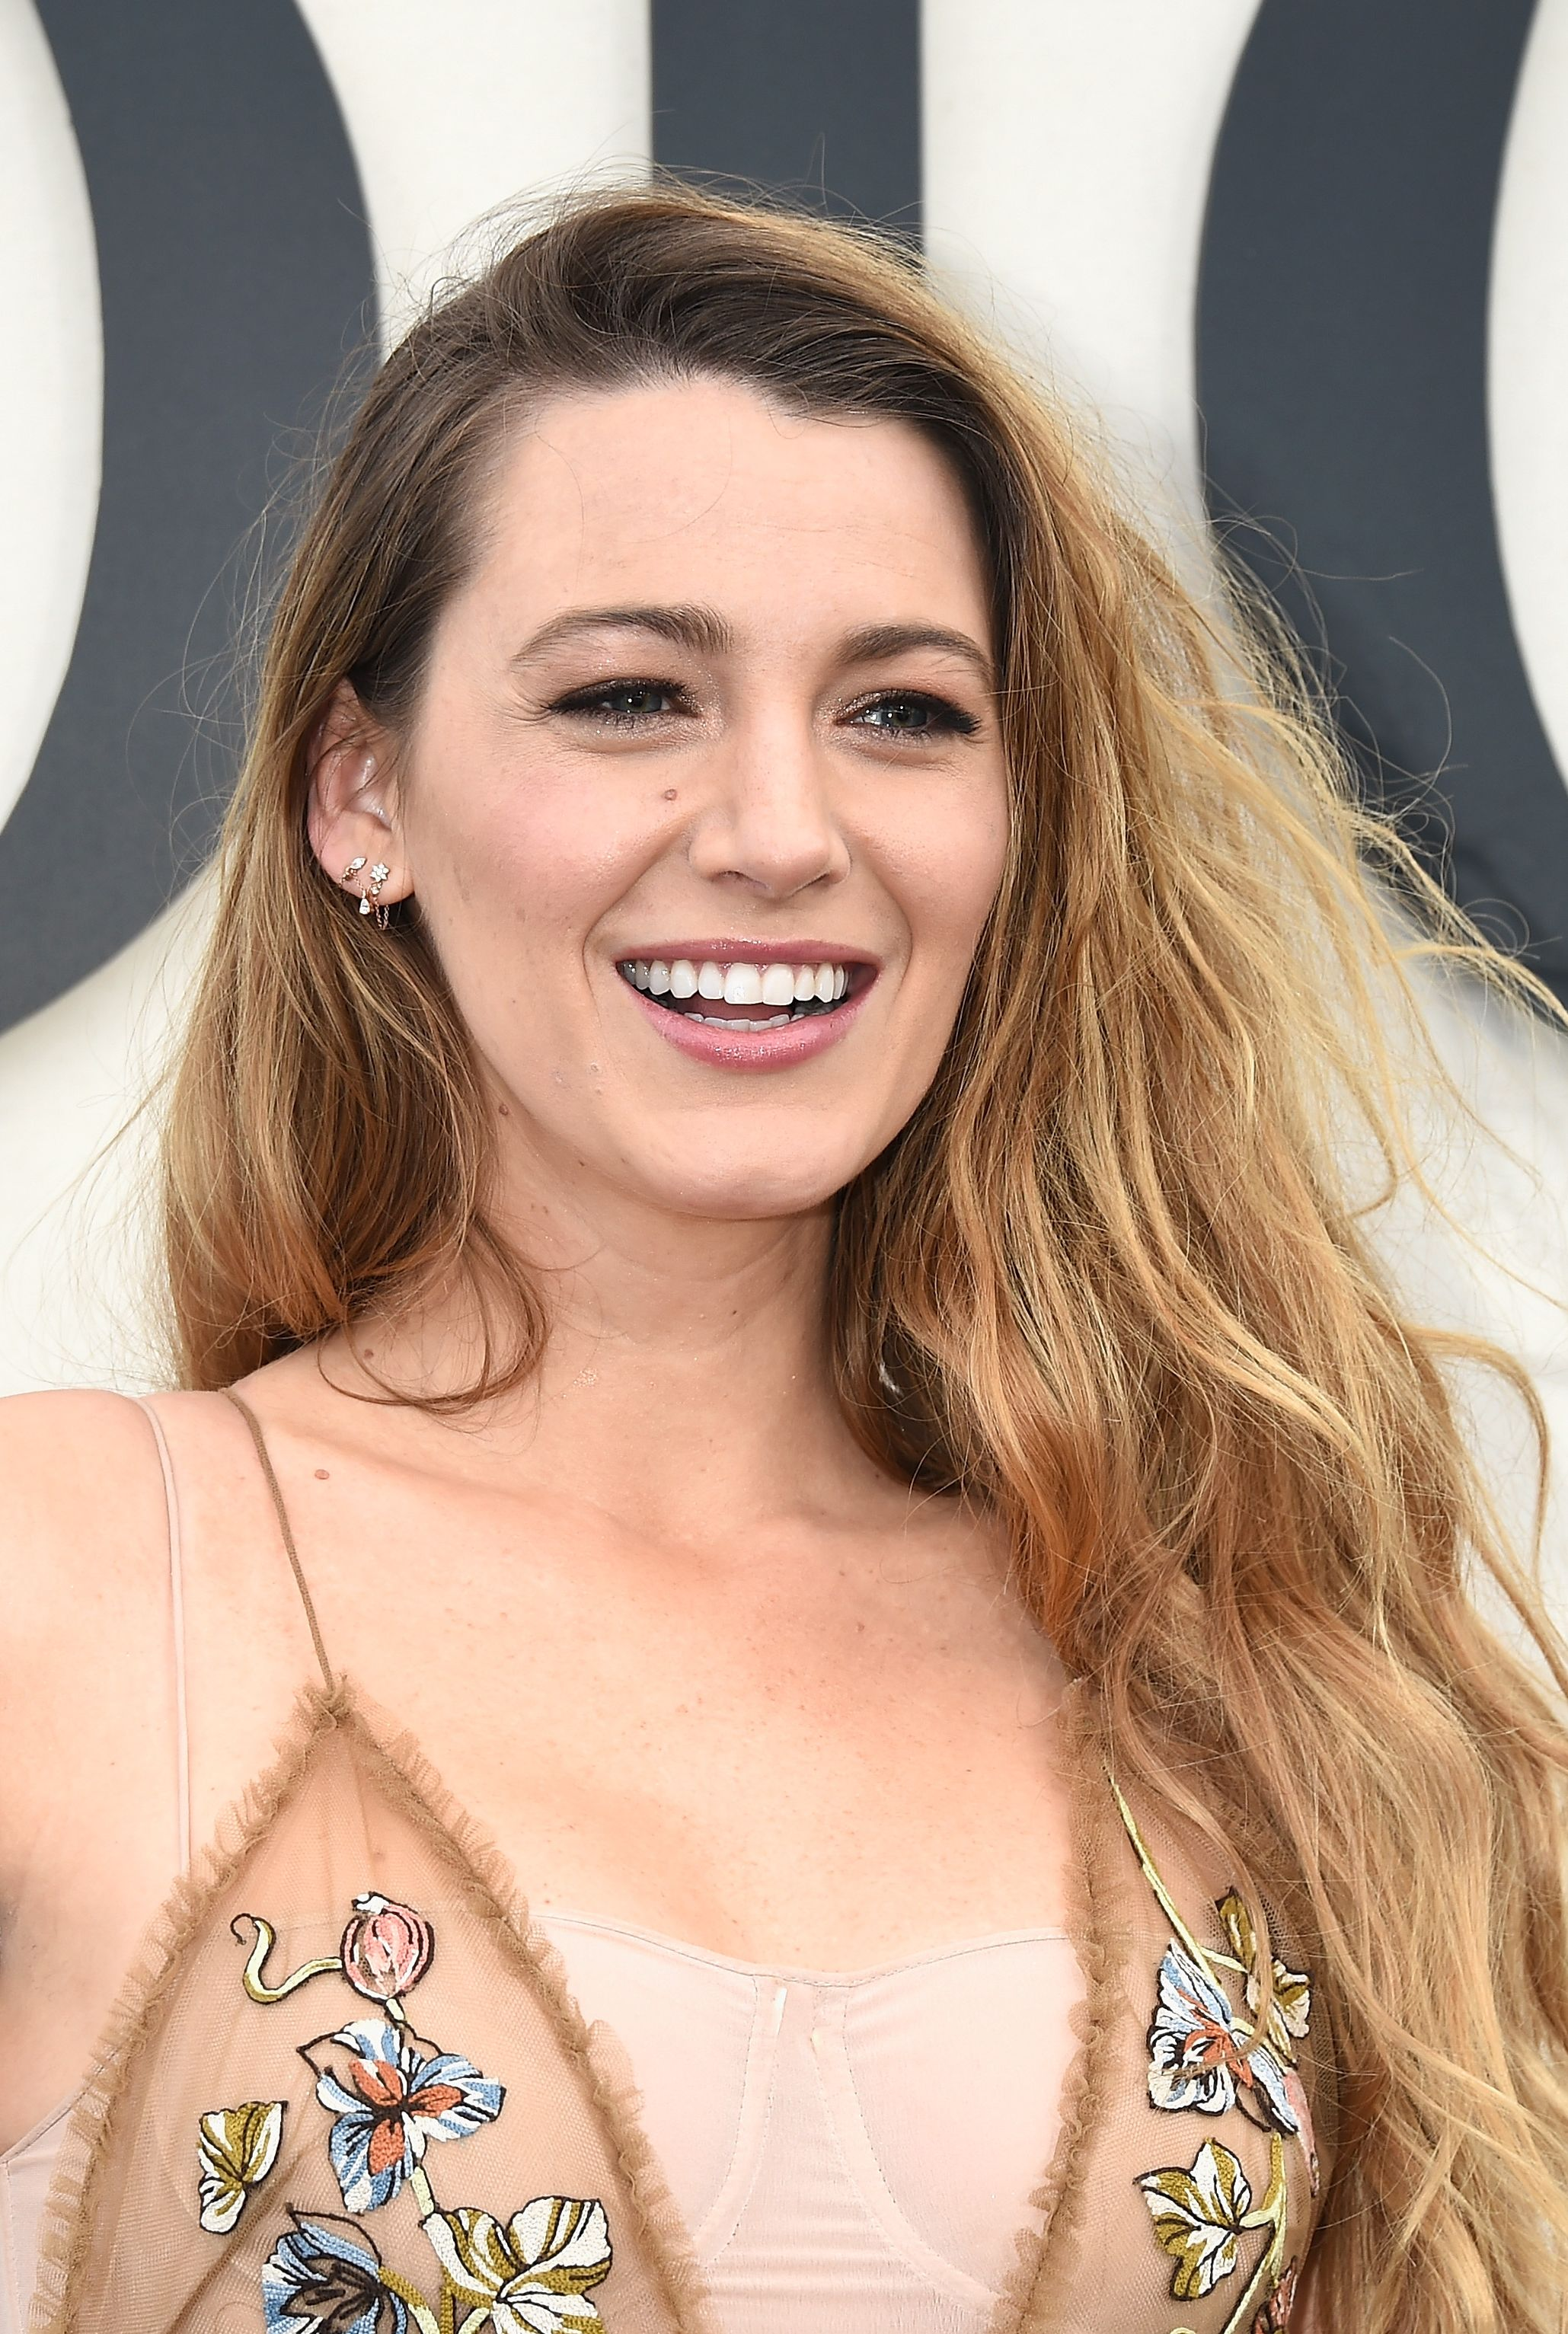 Haircuts for Women Over 30 - Blake Lively